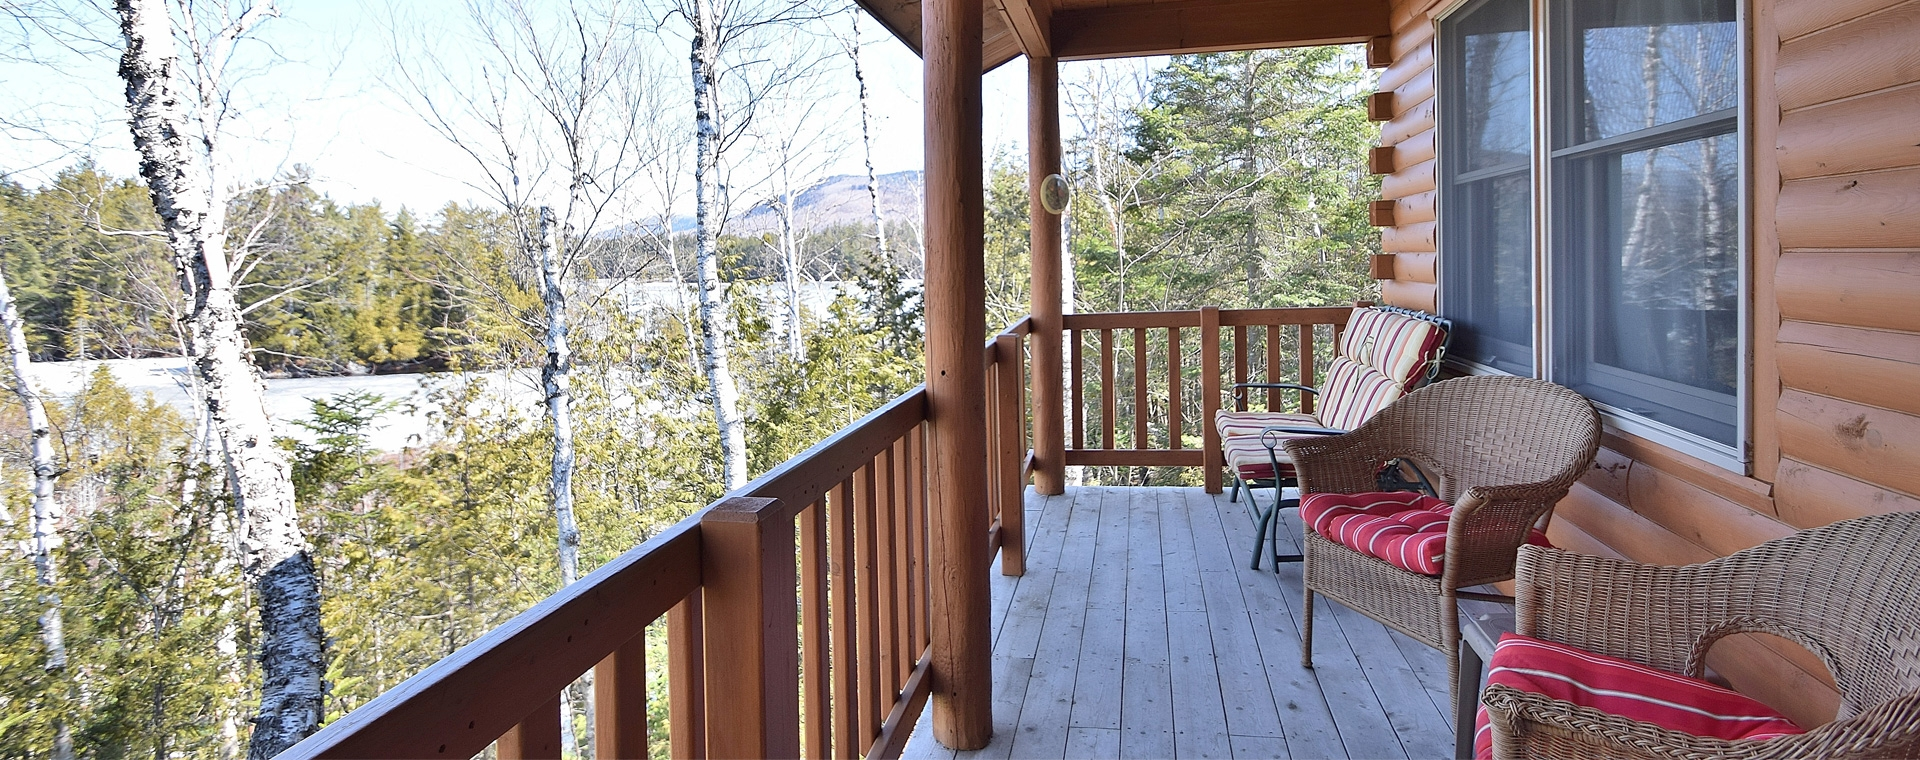 Moosetracks Family Cottages Scenic Overlook